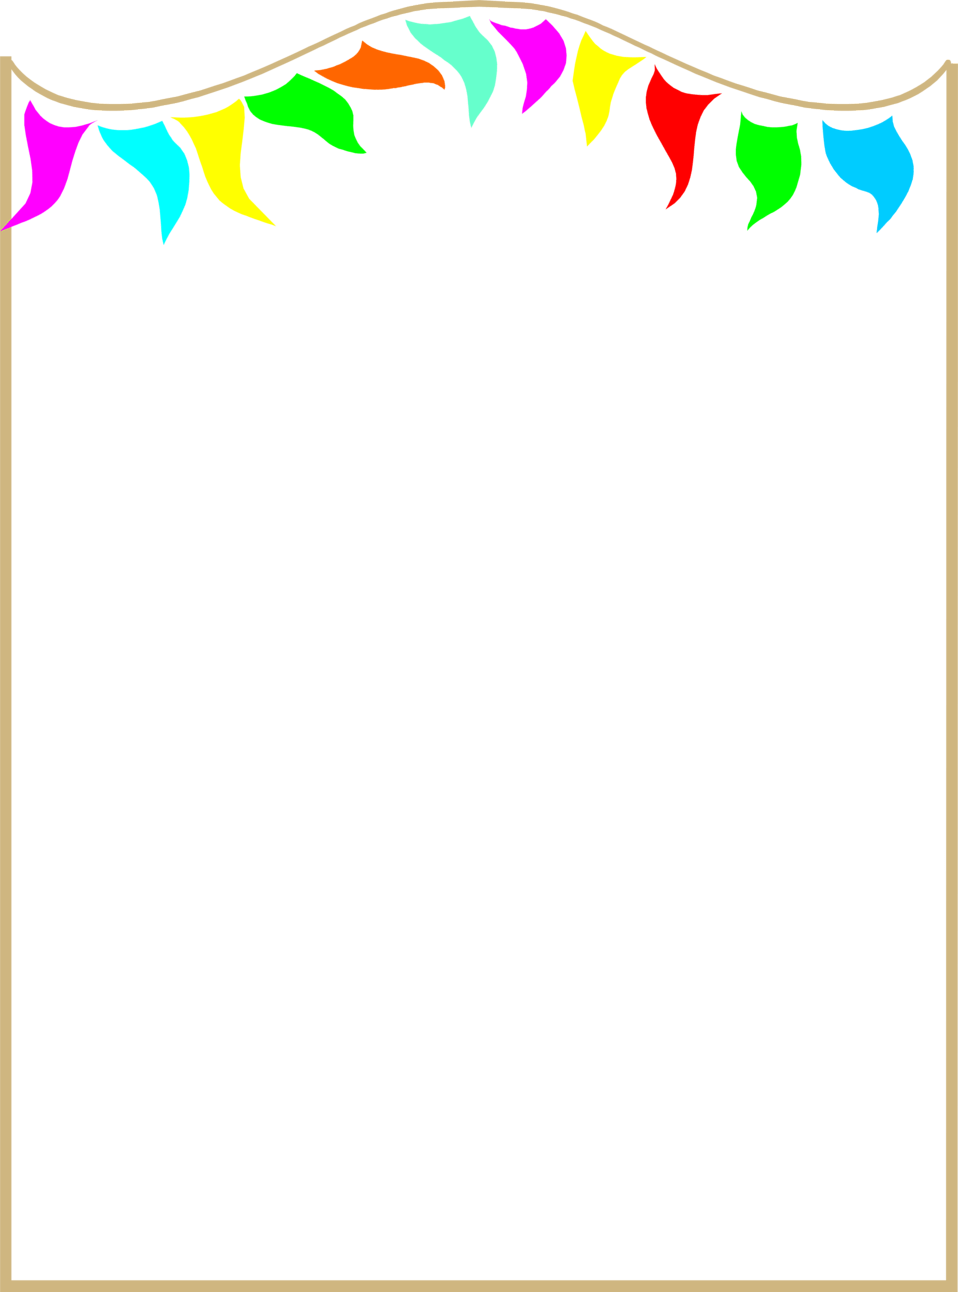 Torch clipart border. Colorful page borders free